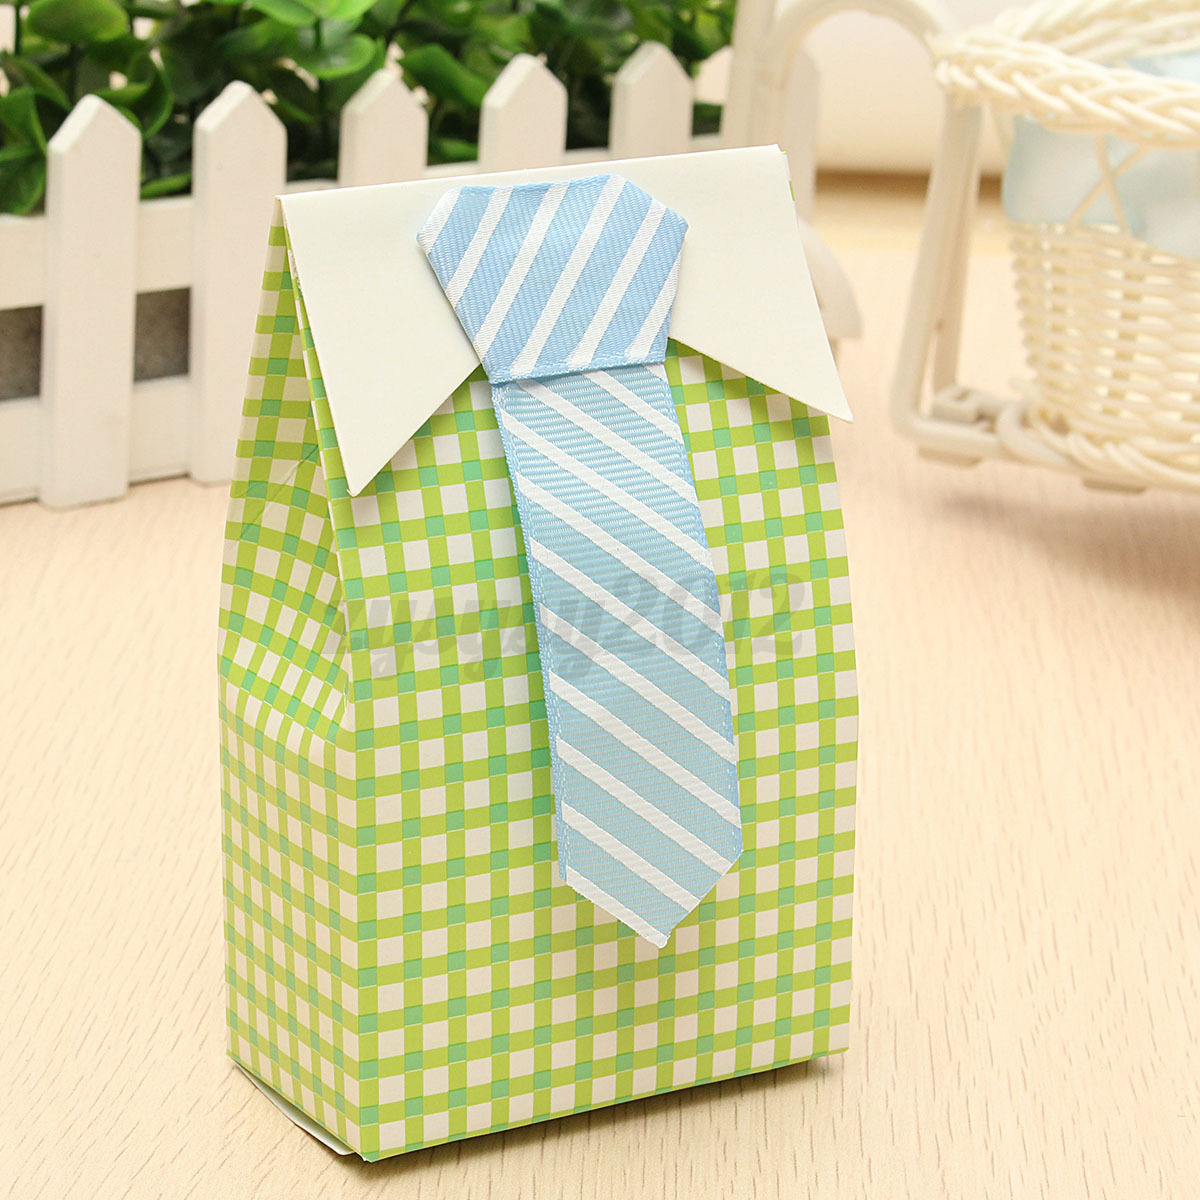 ... DIY > Celebrations & Occasions > Gift Wrapping & Supplies &...